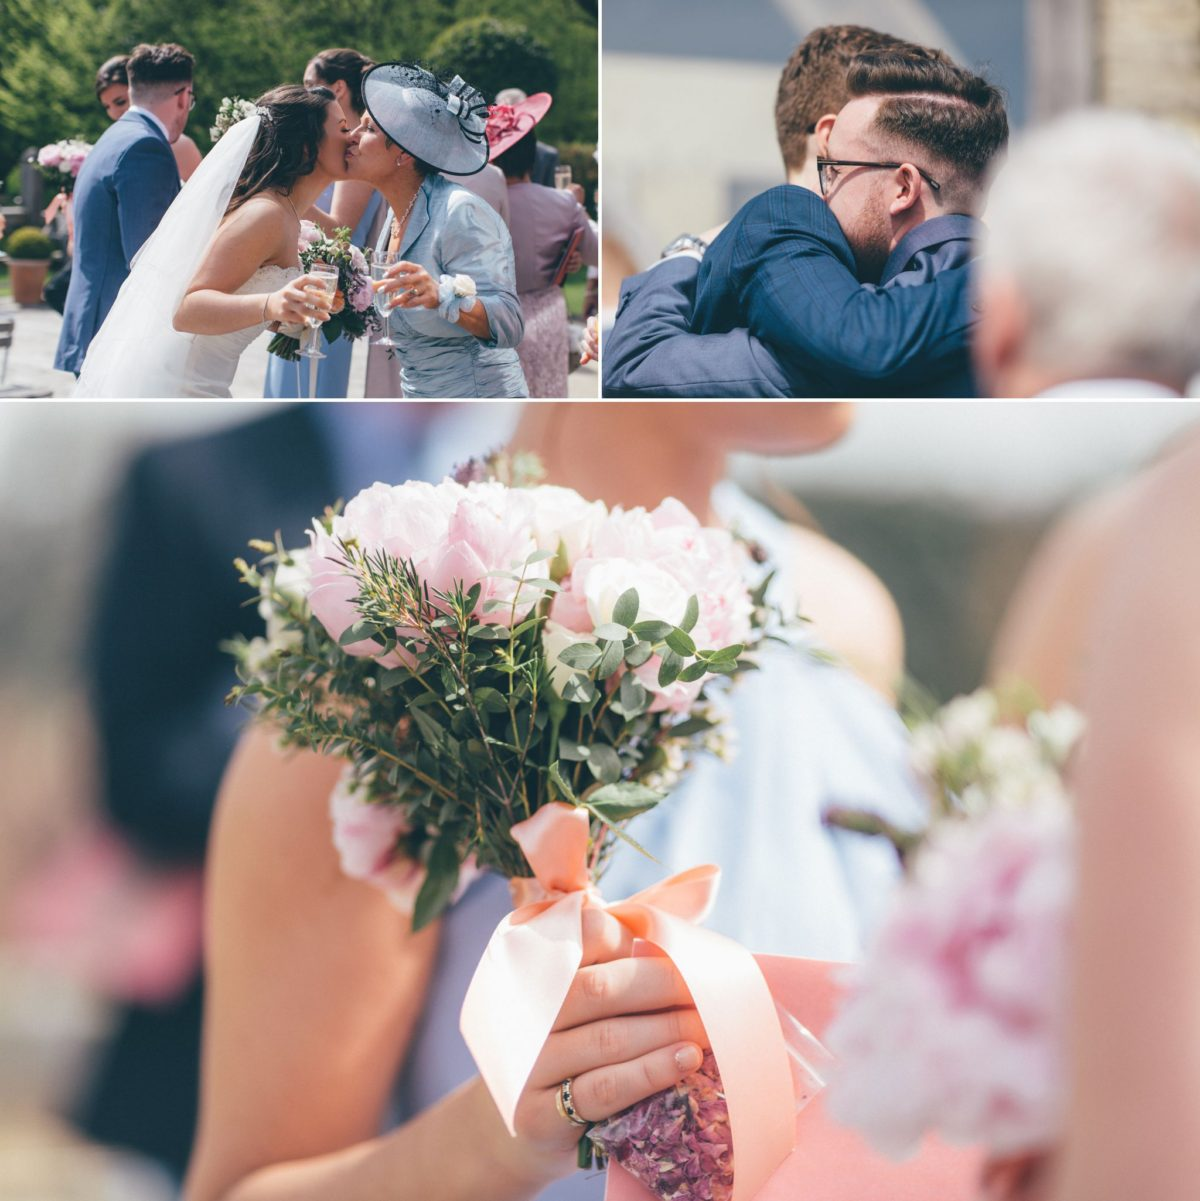 cripps_barn_gloucesterhsire_welsh_wedding_photographer_rachel_lambert_photography_jordan_amy_ 72